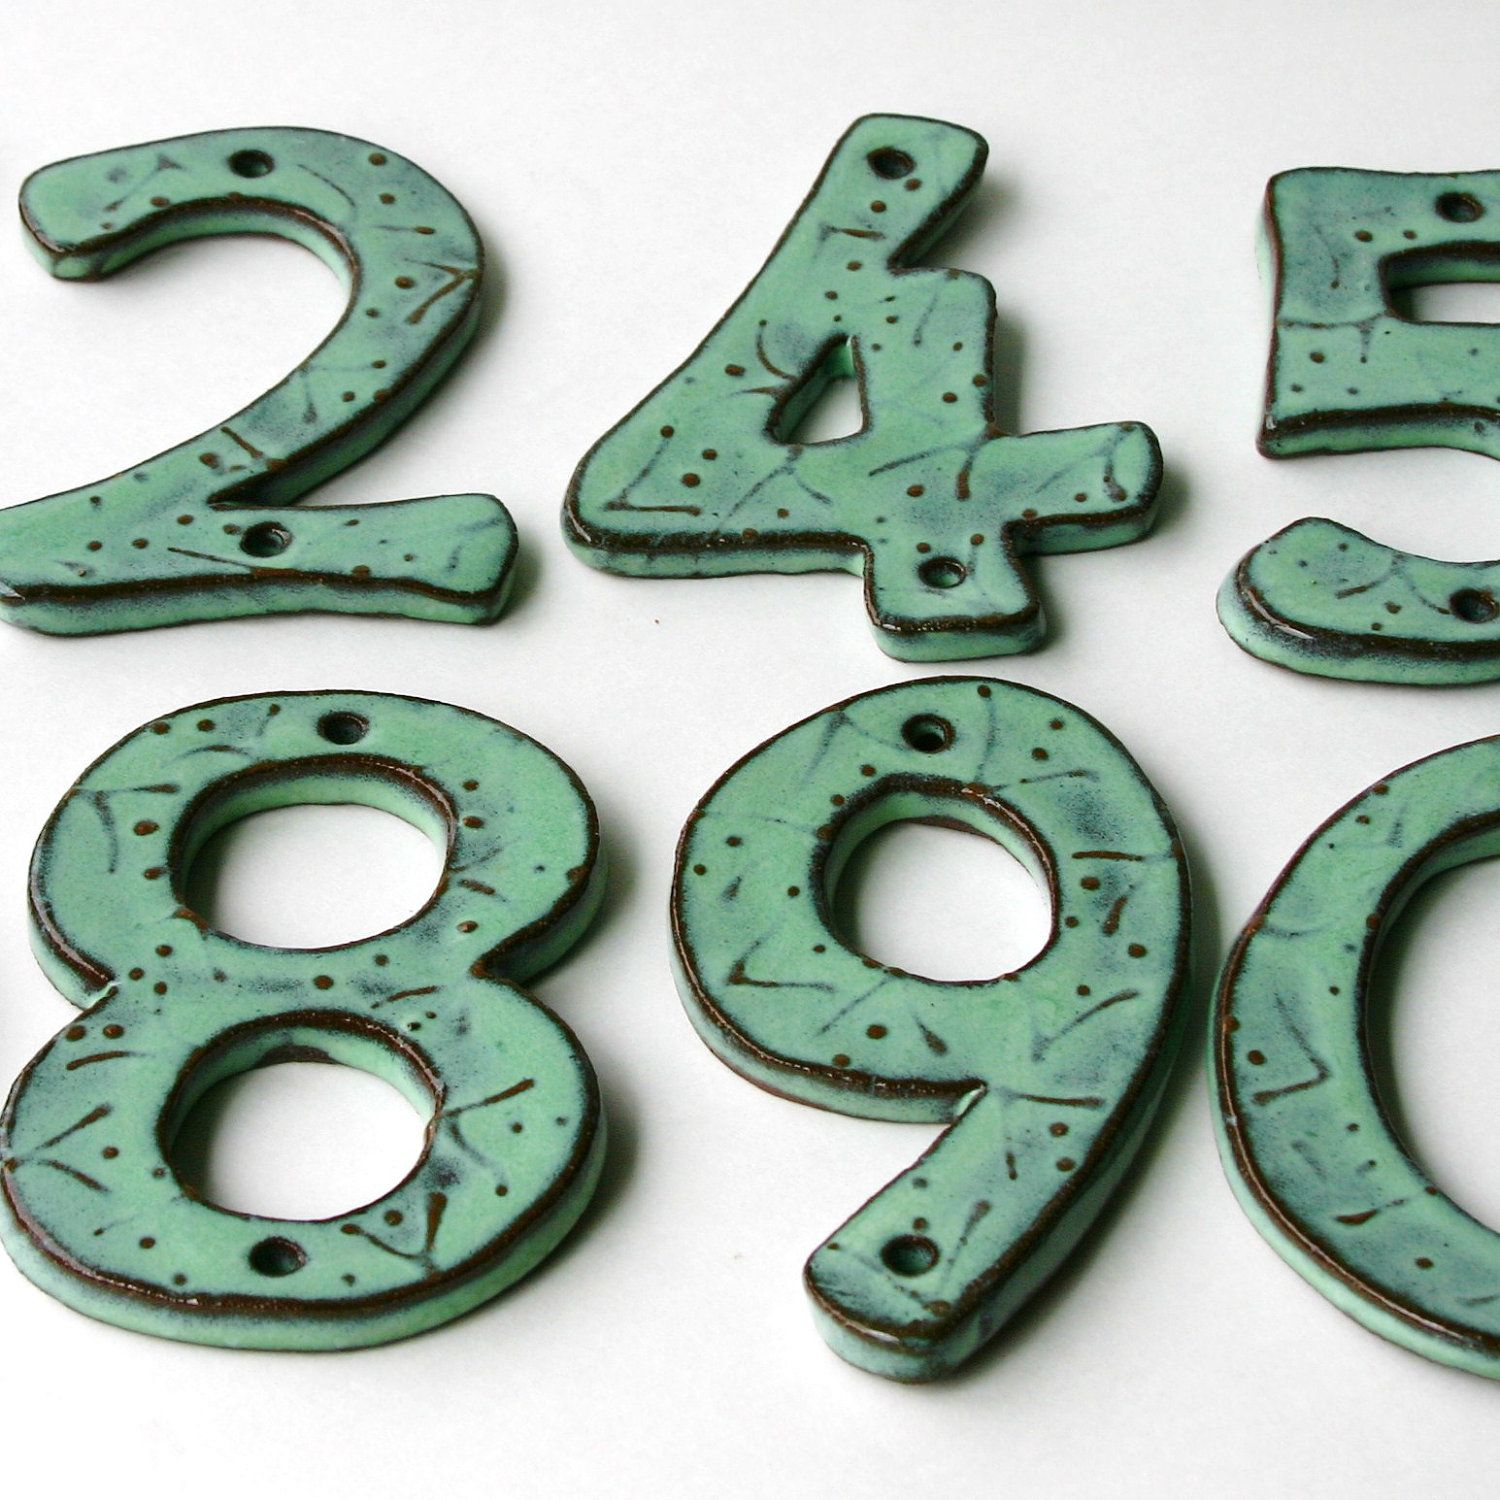 1000+ images about ceramic tiles and numbers on Pinterest - ^